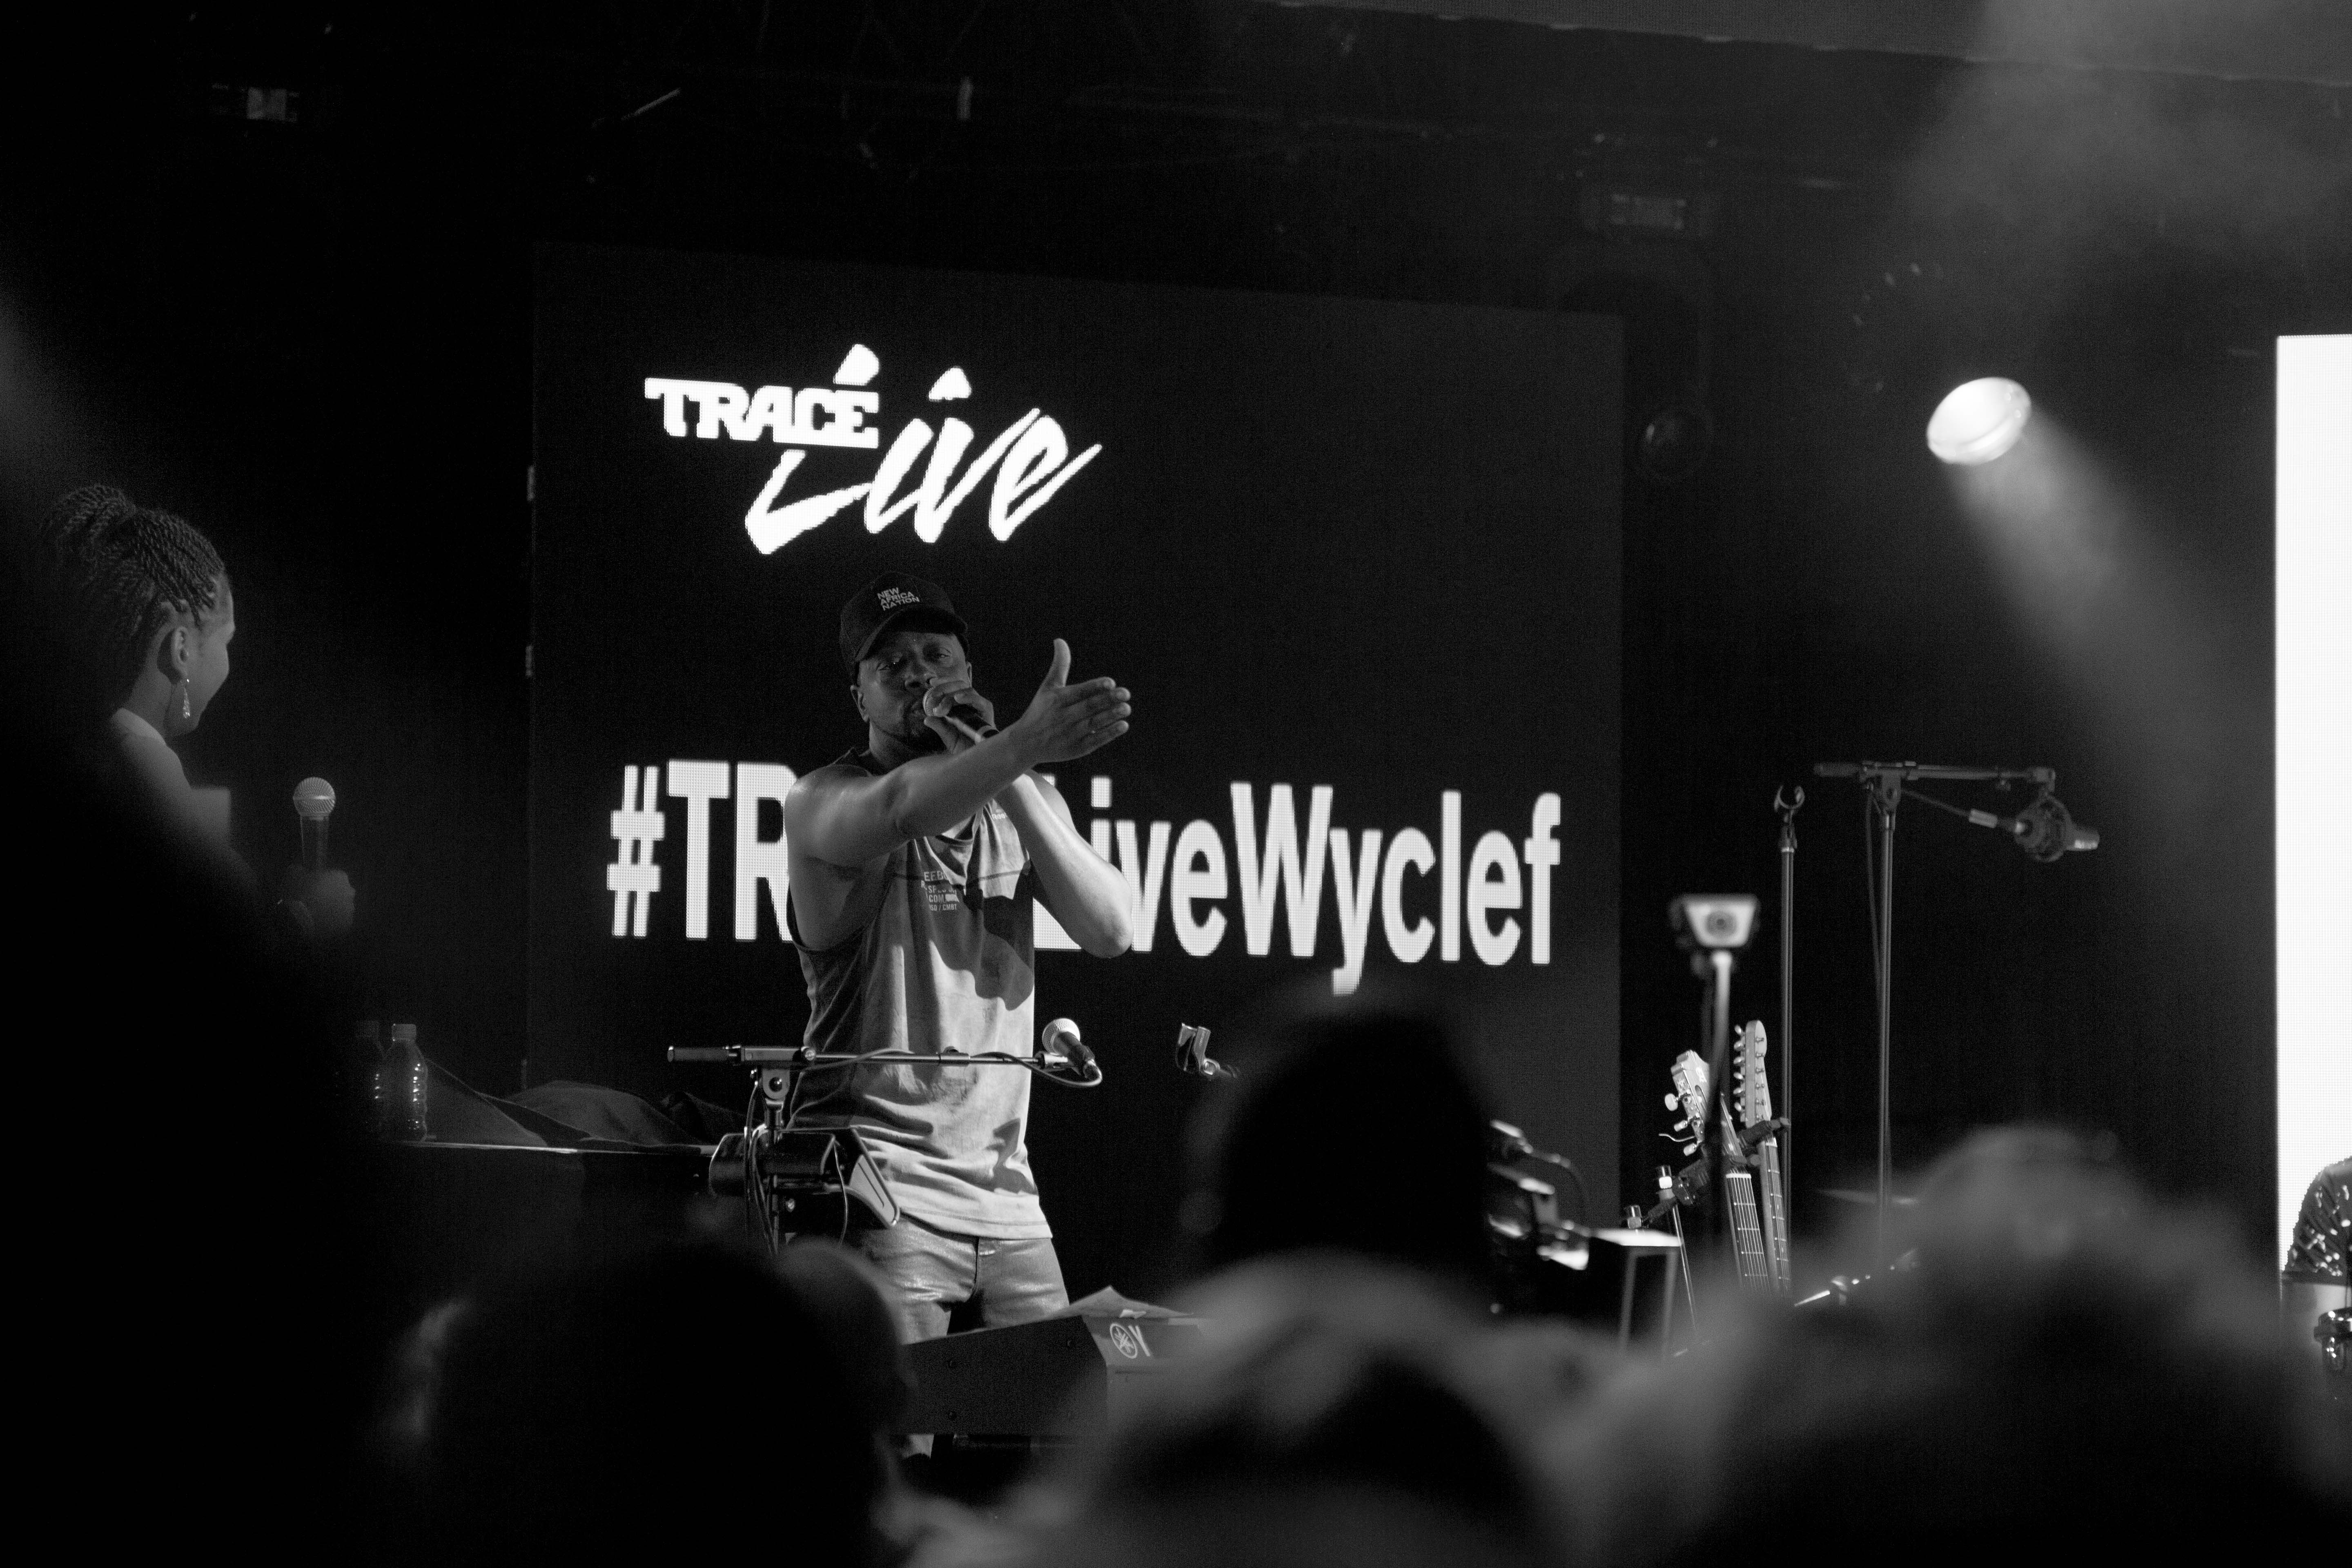 Wyclef_Jean_TRACE_LIVE_13_06_2017 © Memorable Event